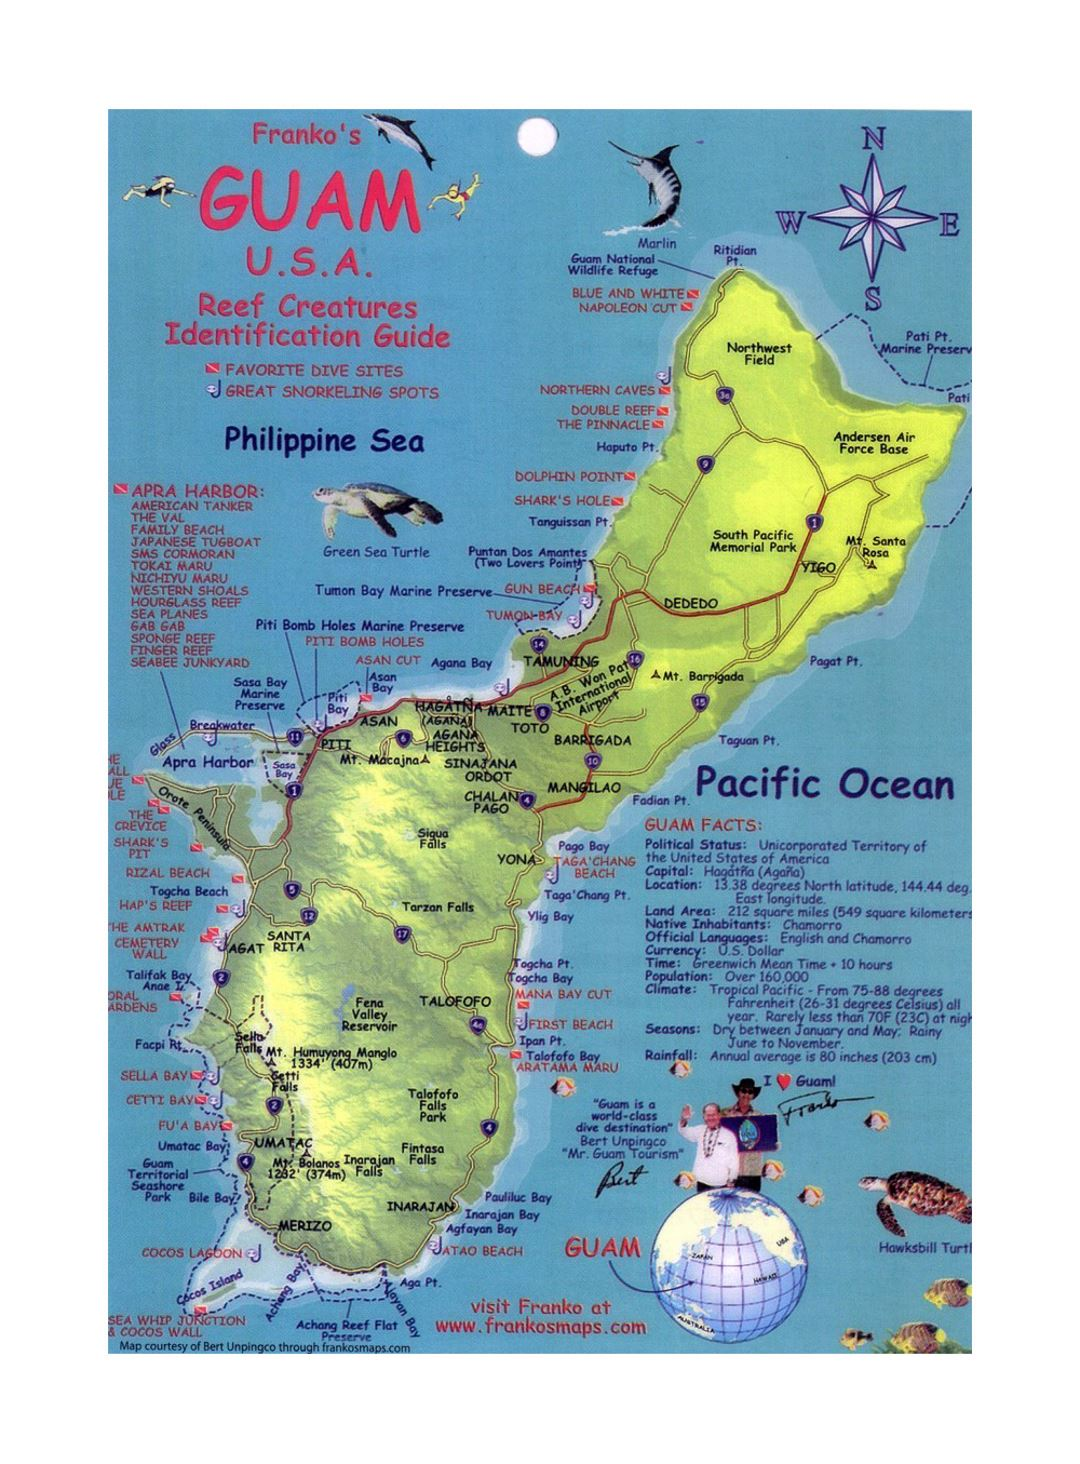 Detailed travel map of Guam with other marks